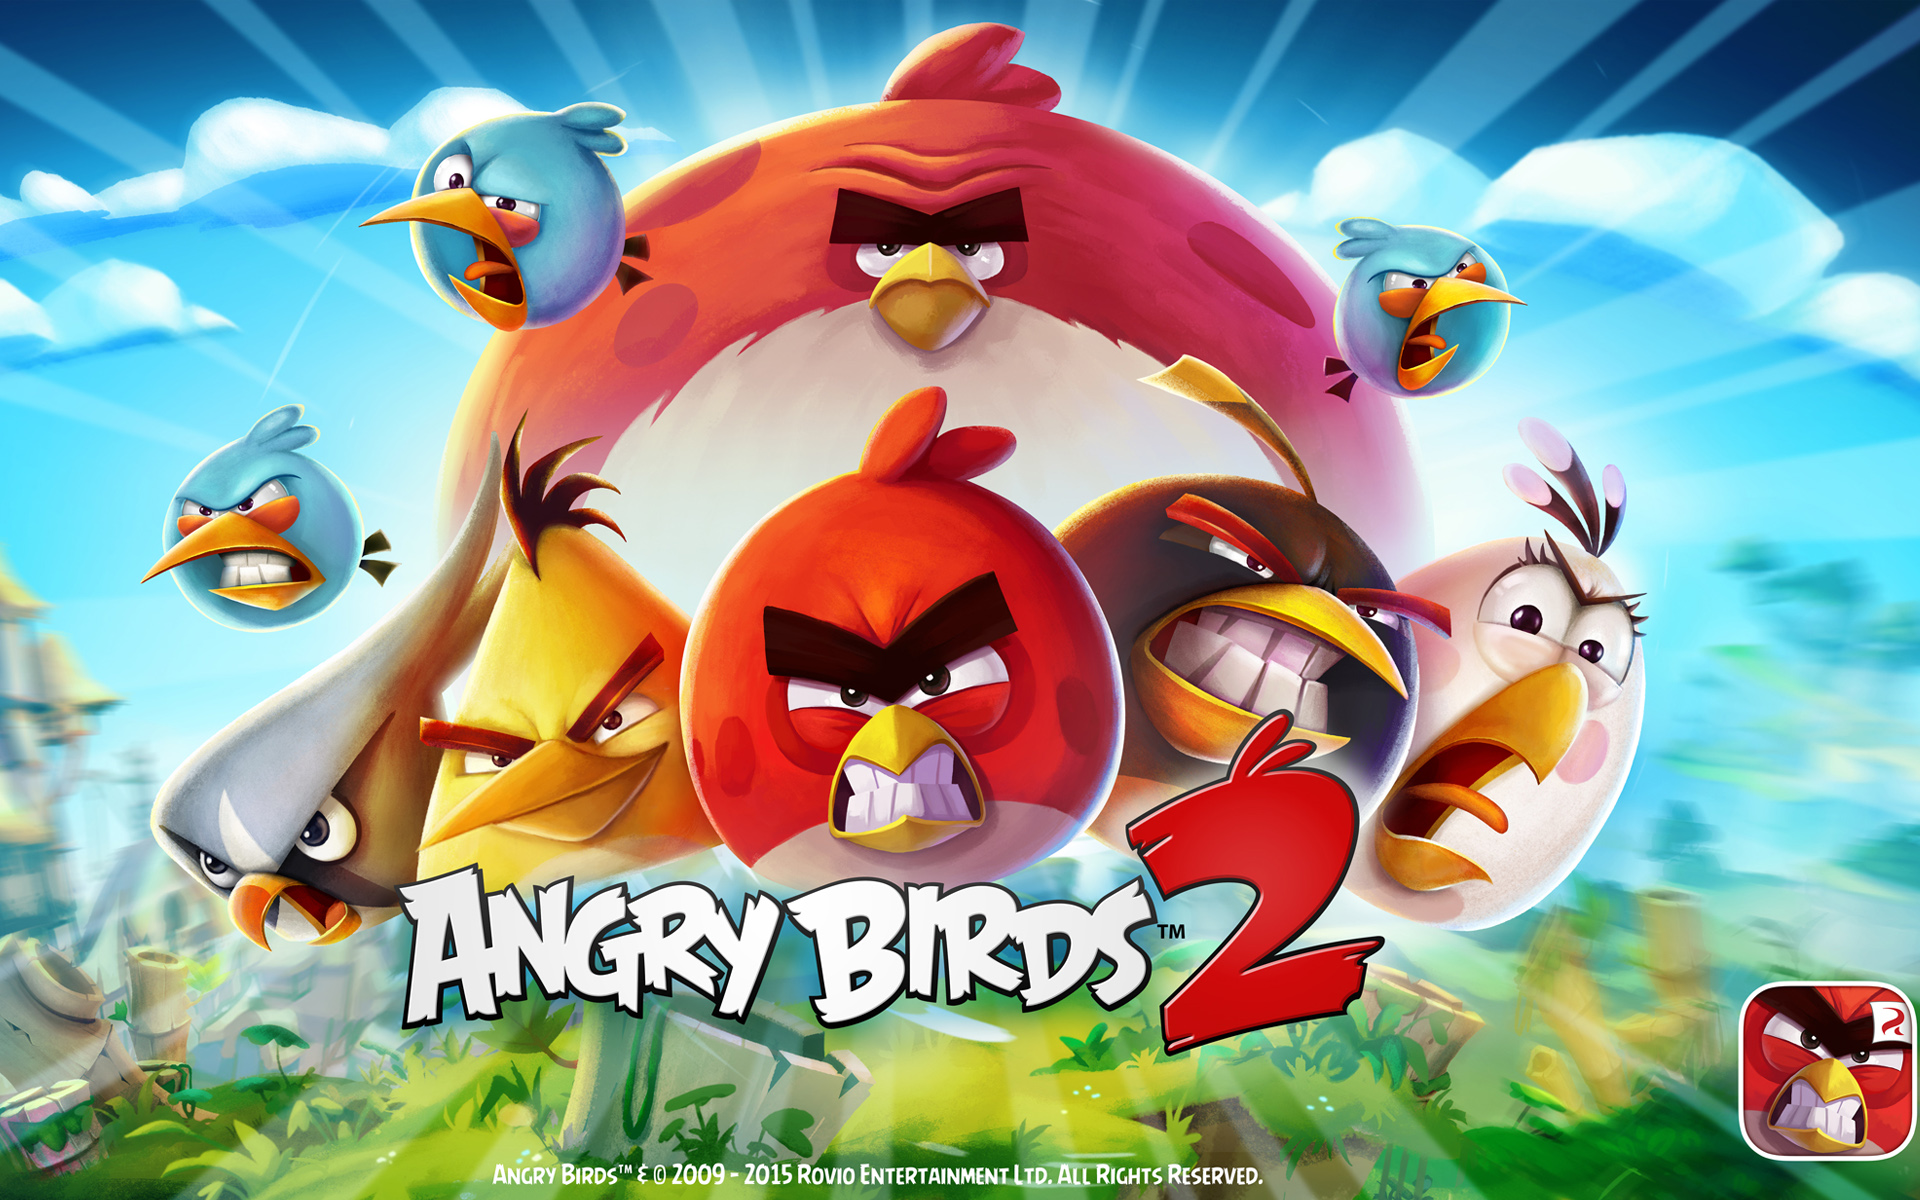 HD Wallpapers Angry Birds 2